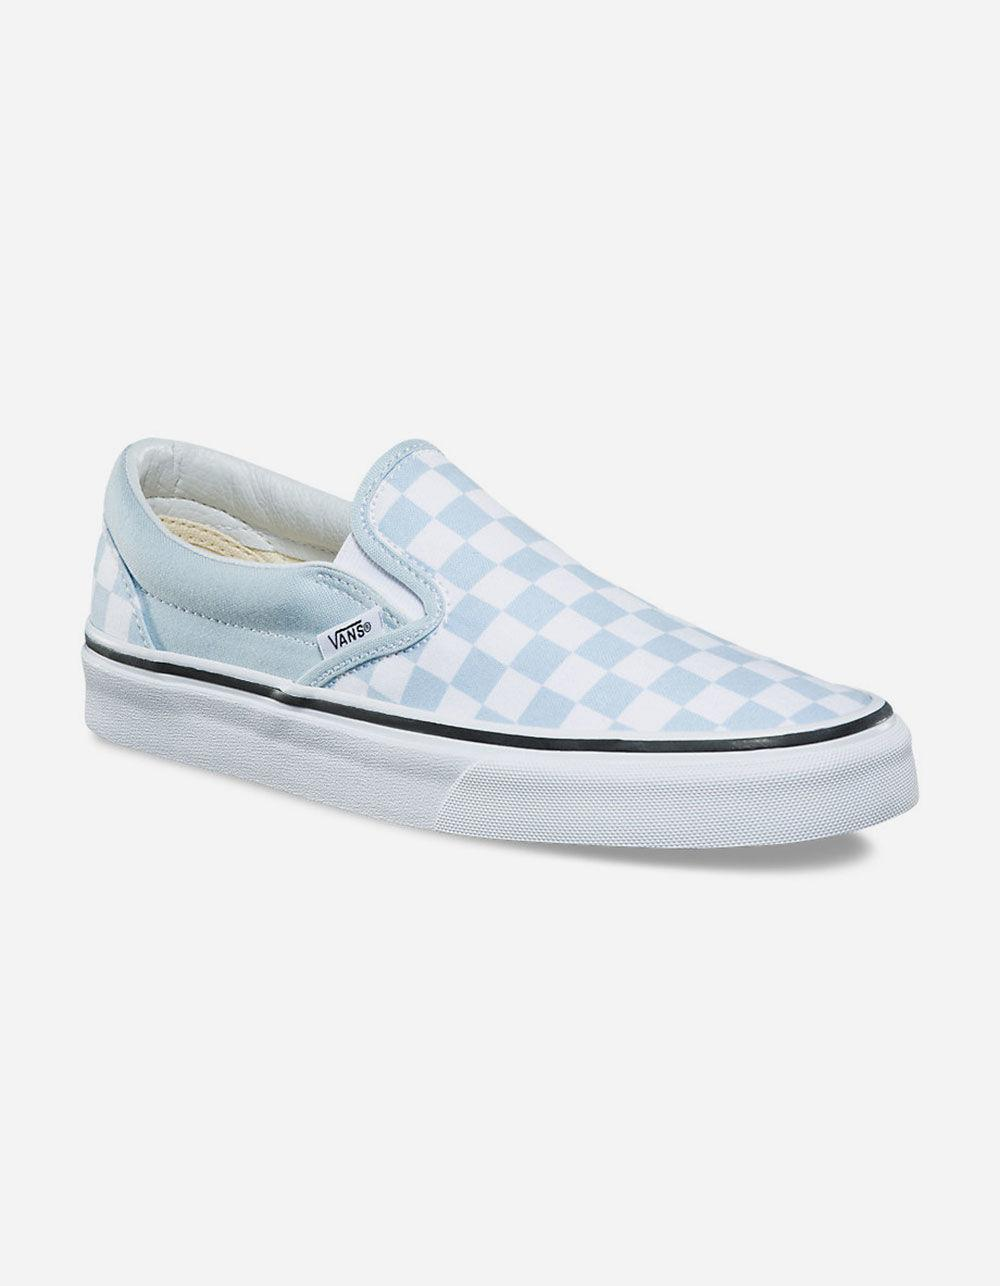 cb409095e8f Lyst - Vans Checkerboard Baby Blue Womens Slip-on Shoes in Blue